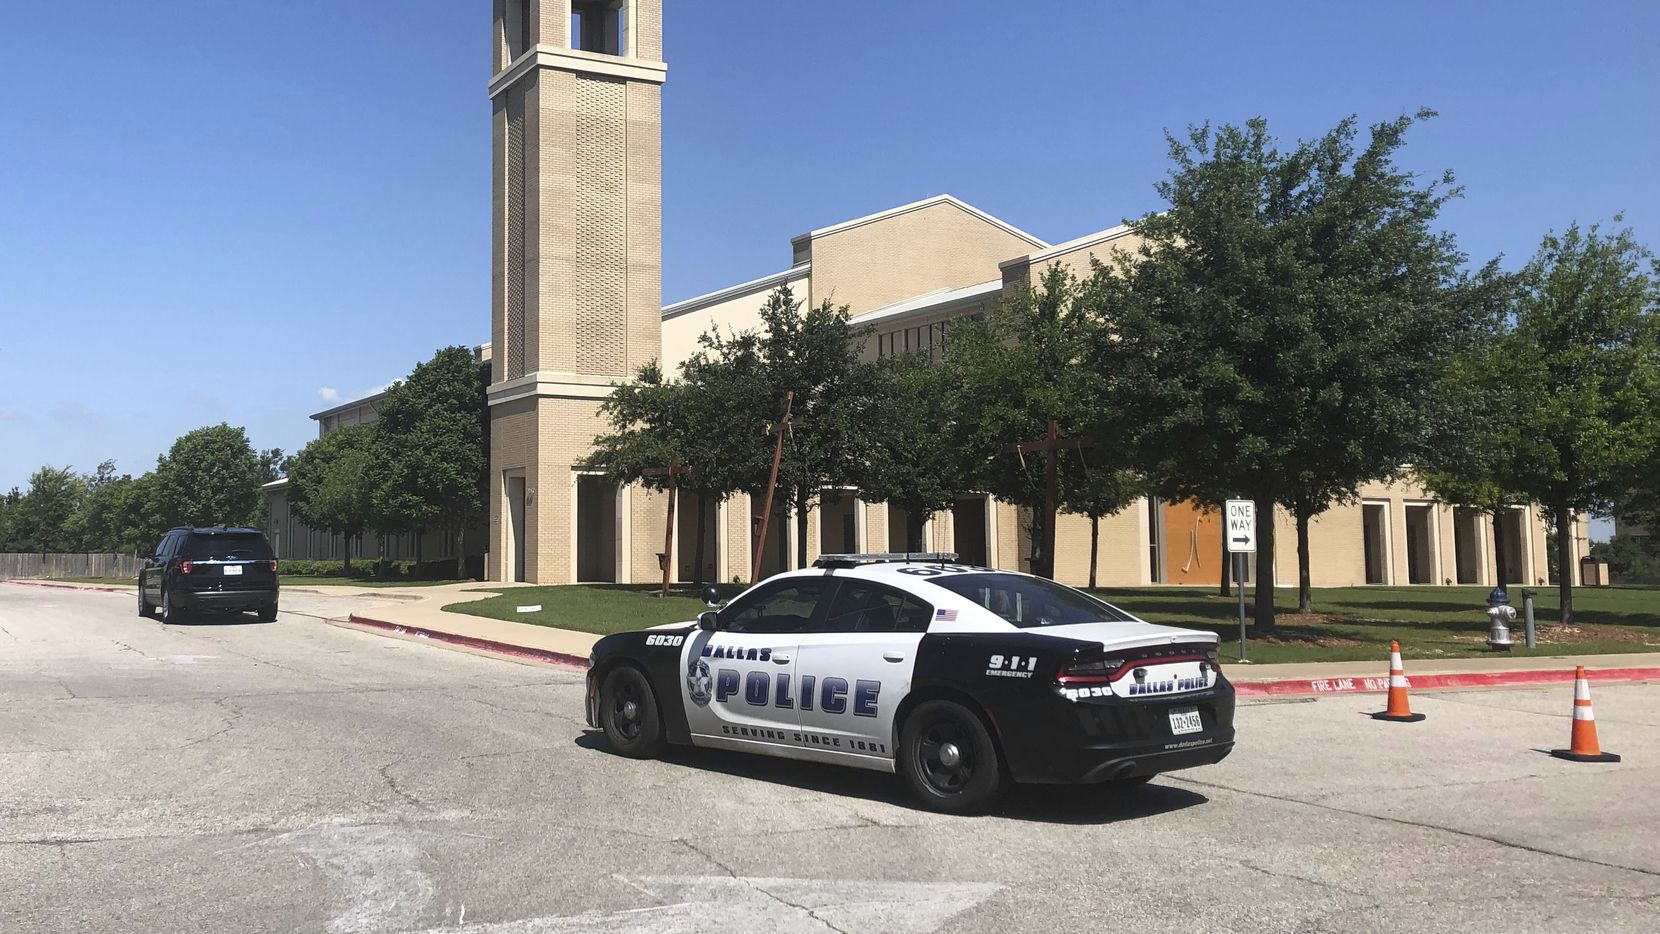 A police car was parked outside St. Cecilia Catholic Church on Wednesday.